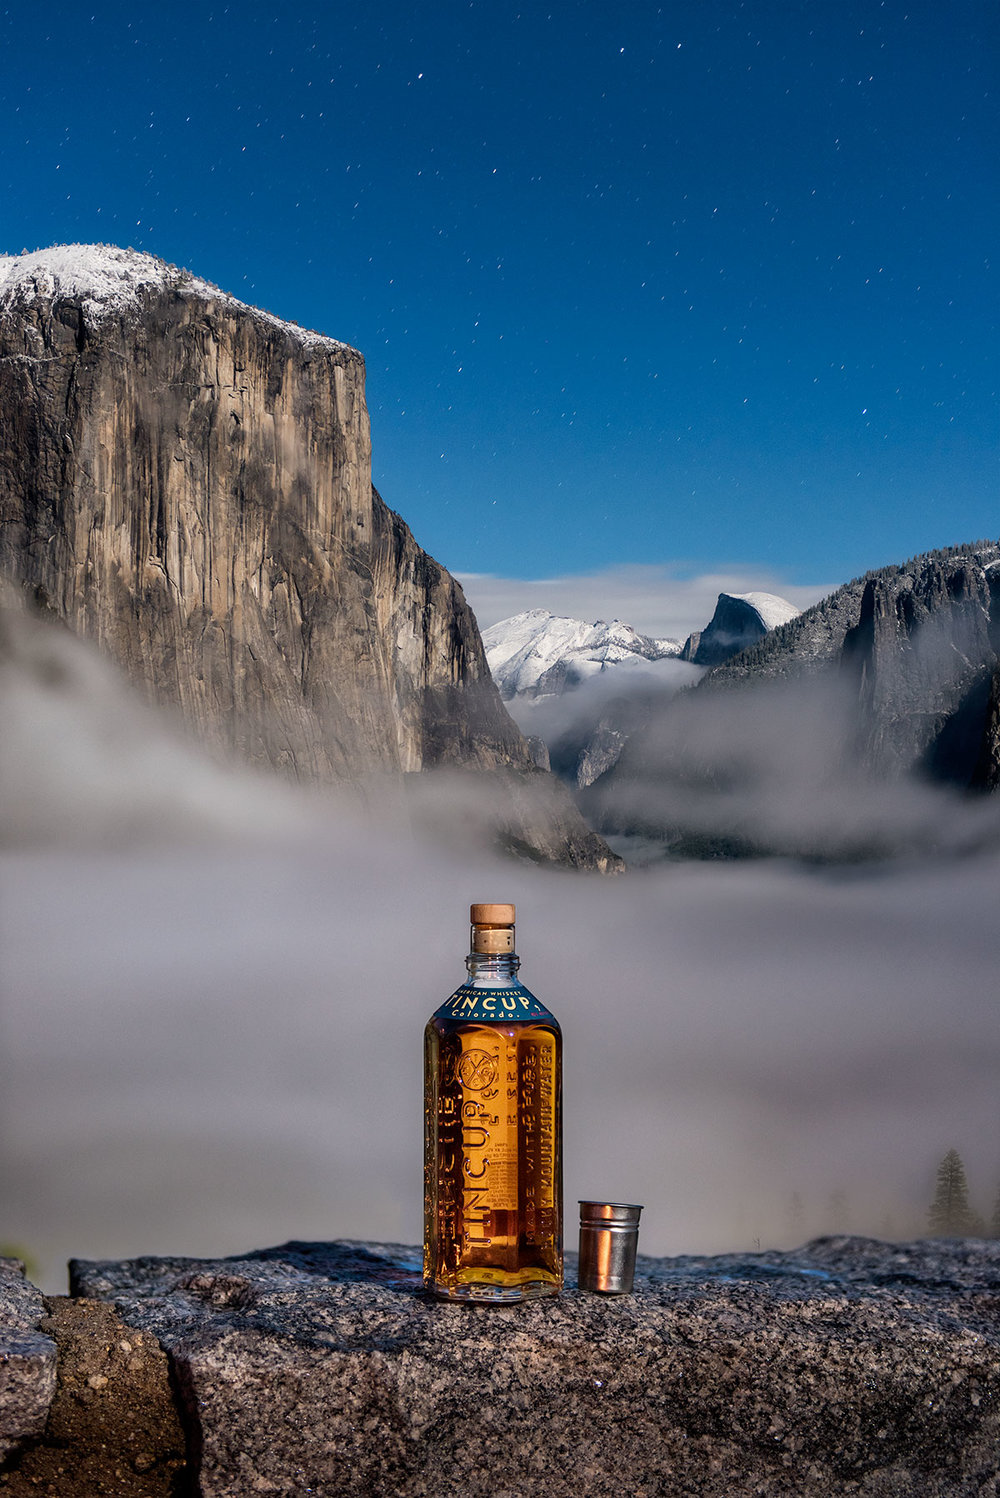 austin-trigg-whiskey-yosemite-product-TINCUP-Tunnel-View-bottle-fog-el-capitan-half-dome.jpg